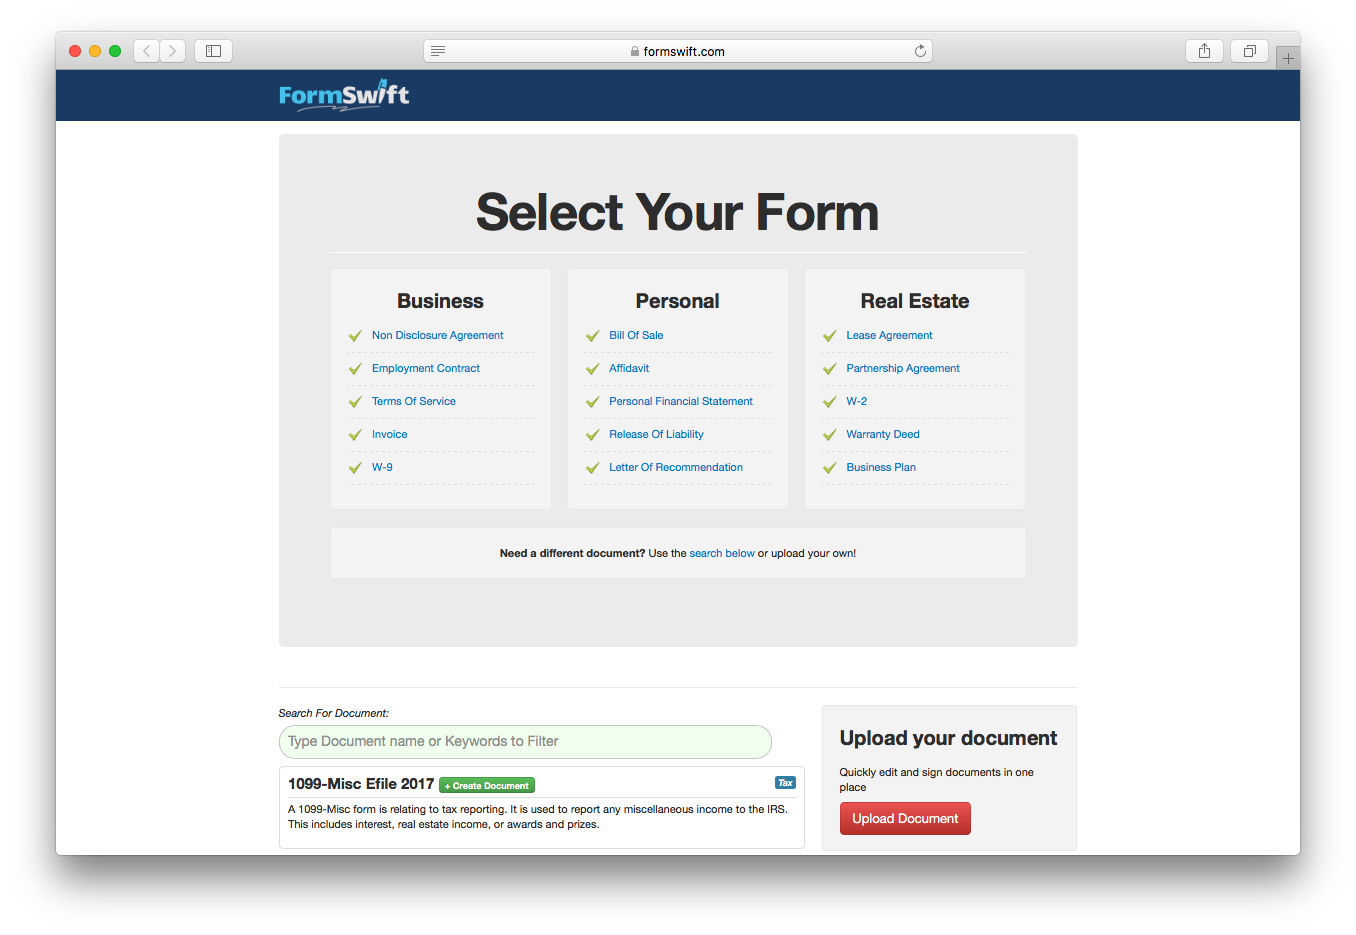 Formswift legal forms business personal real estate search upload